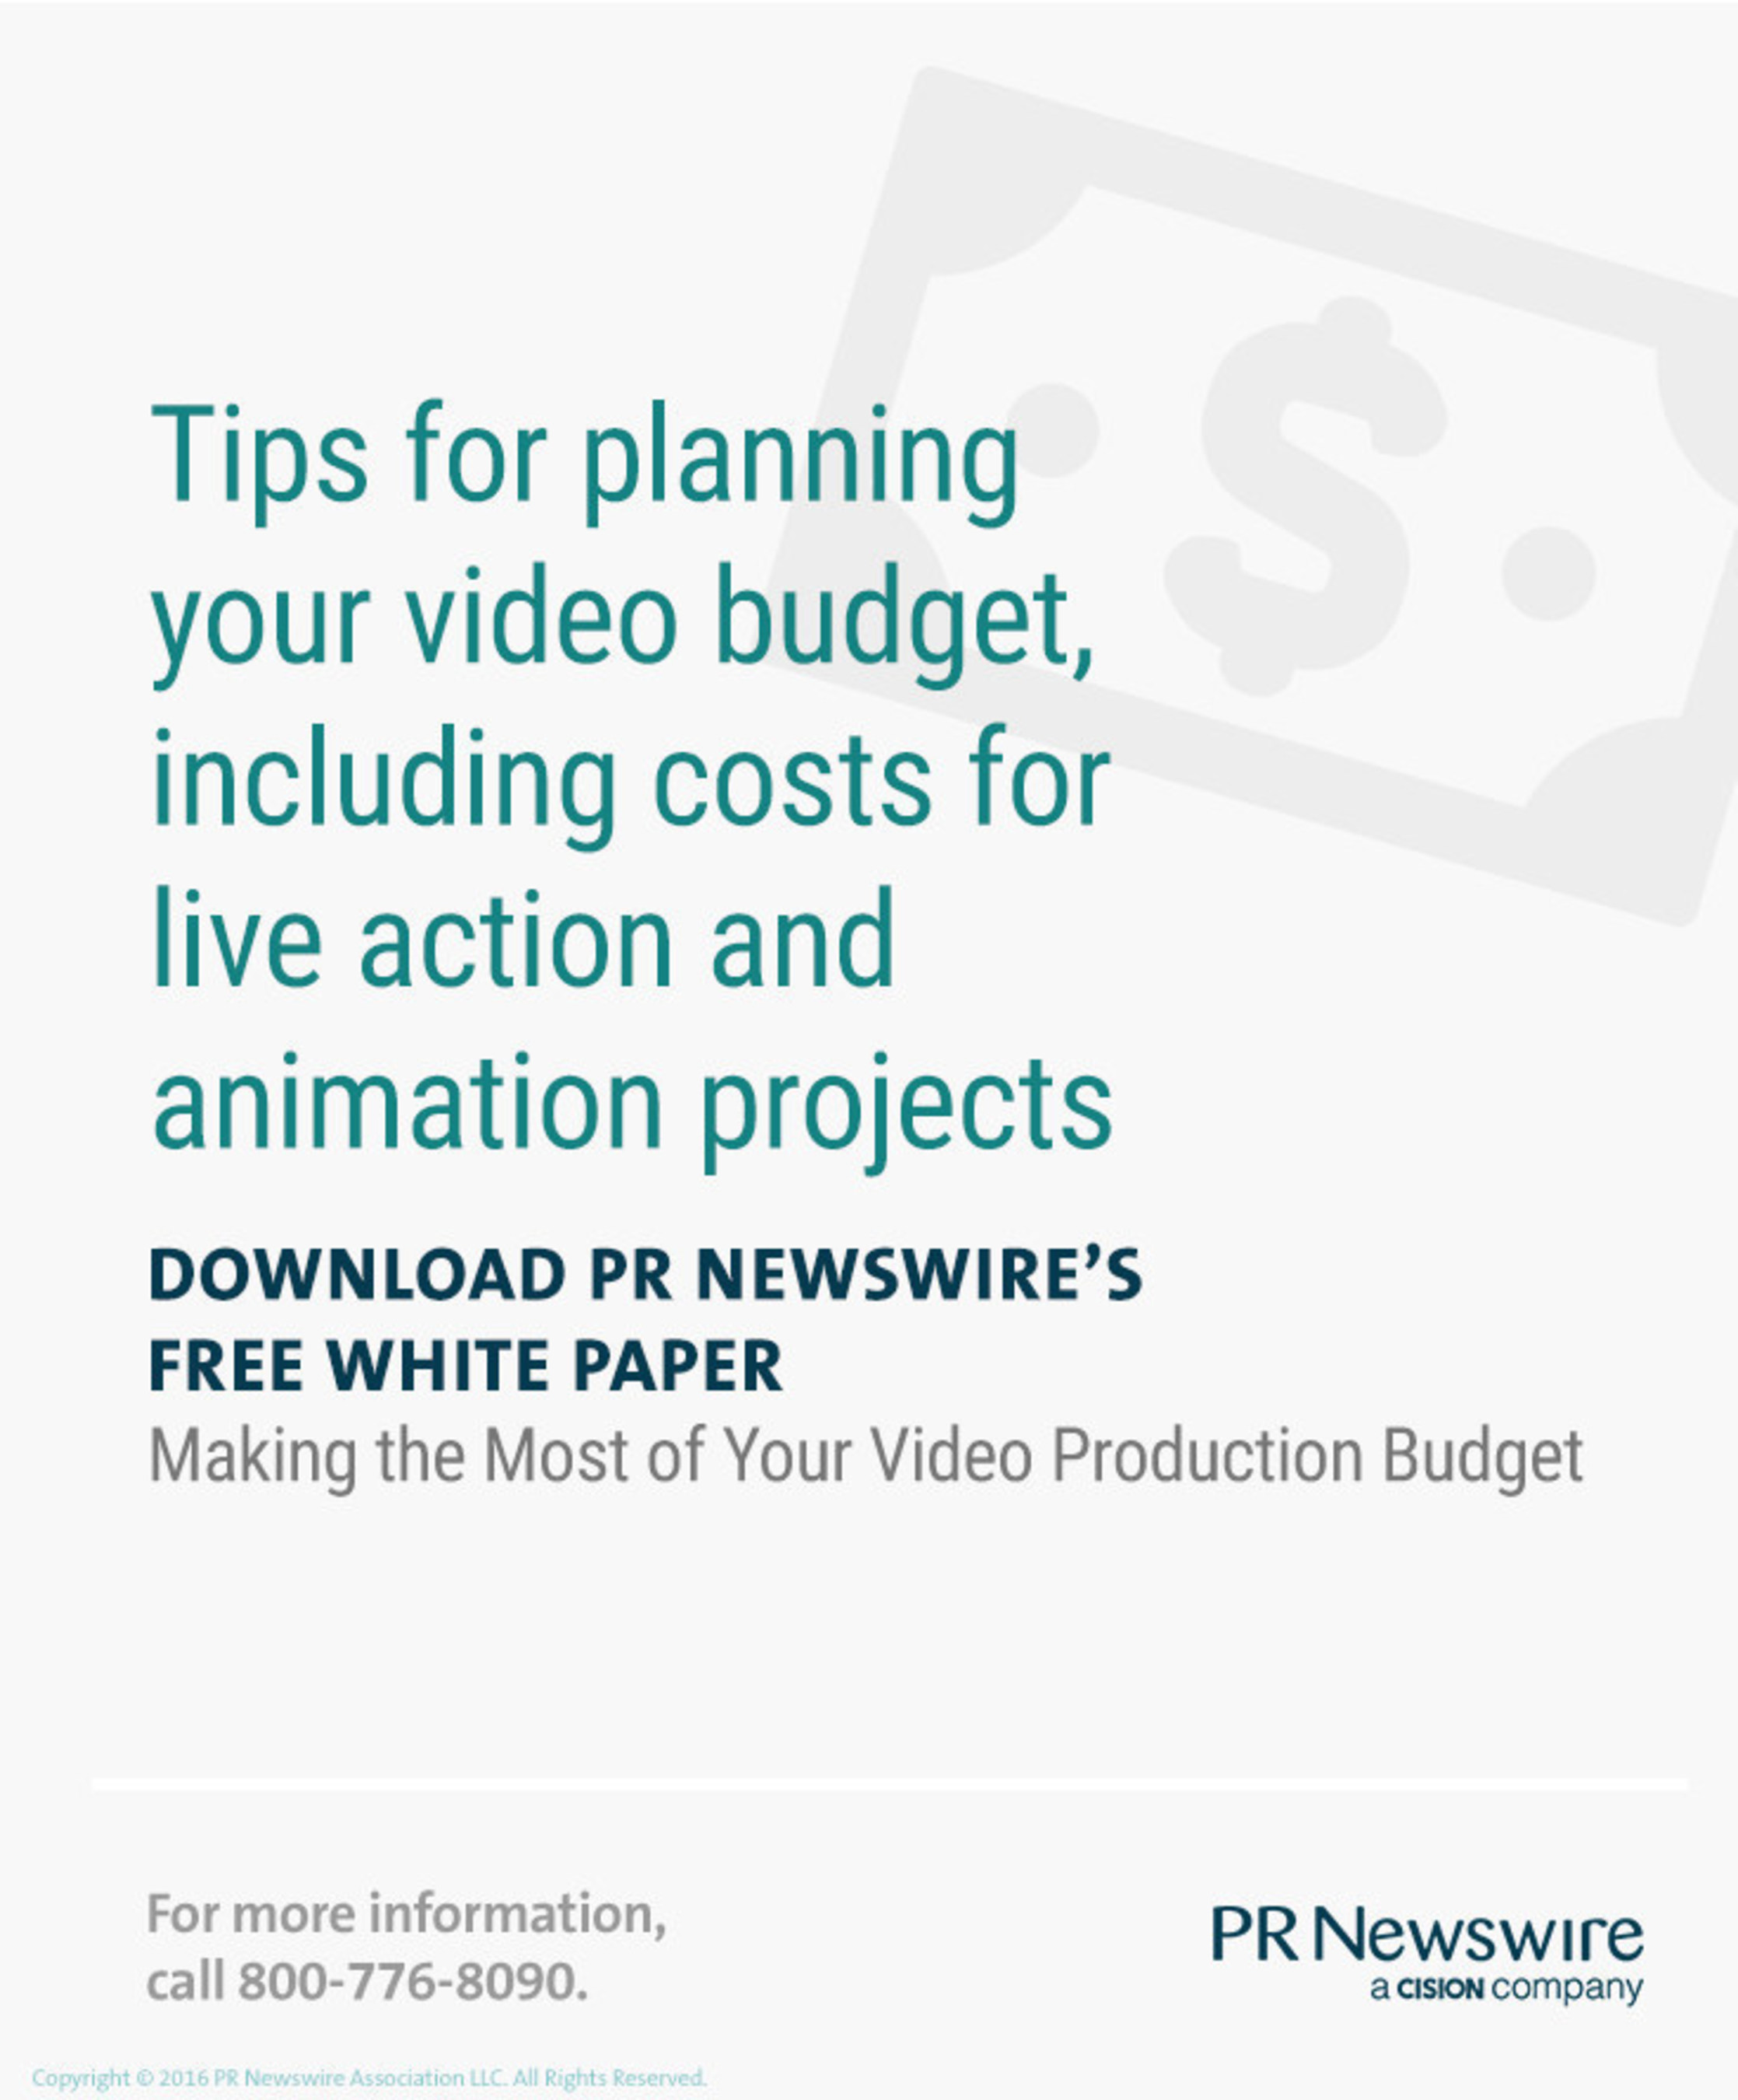 Making the Most of Your Video Production Budget